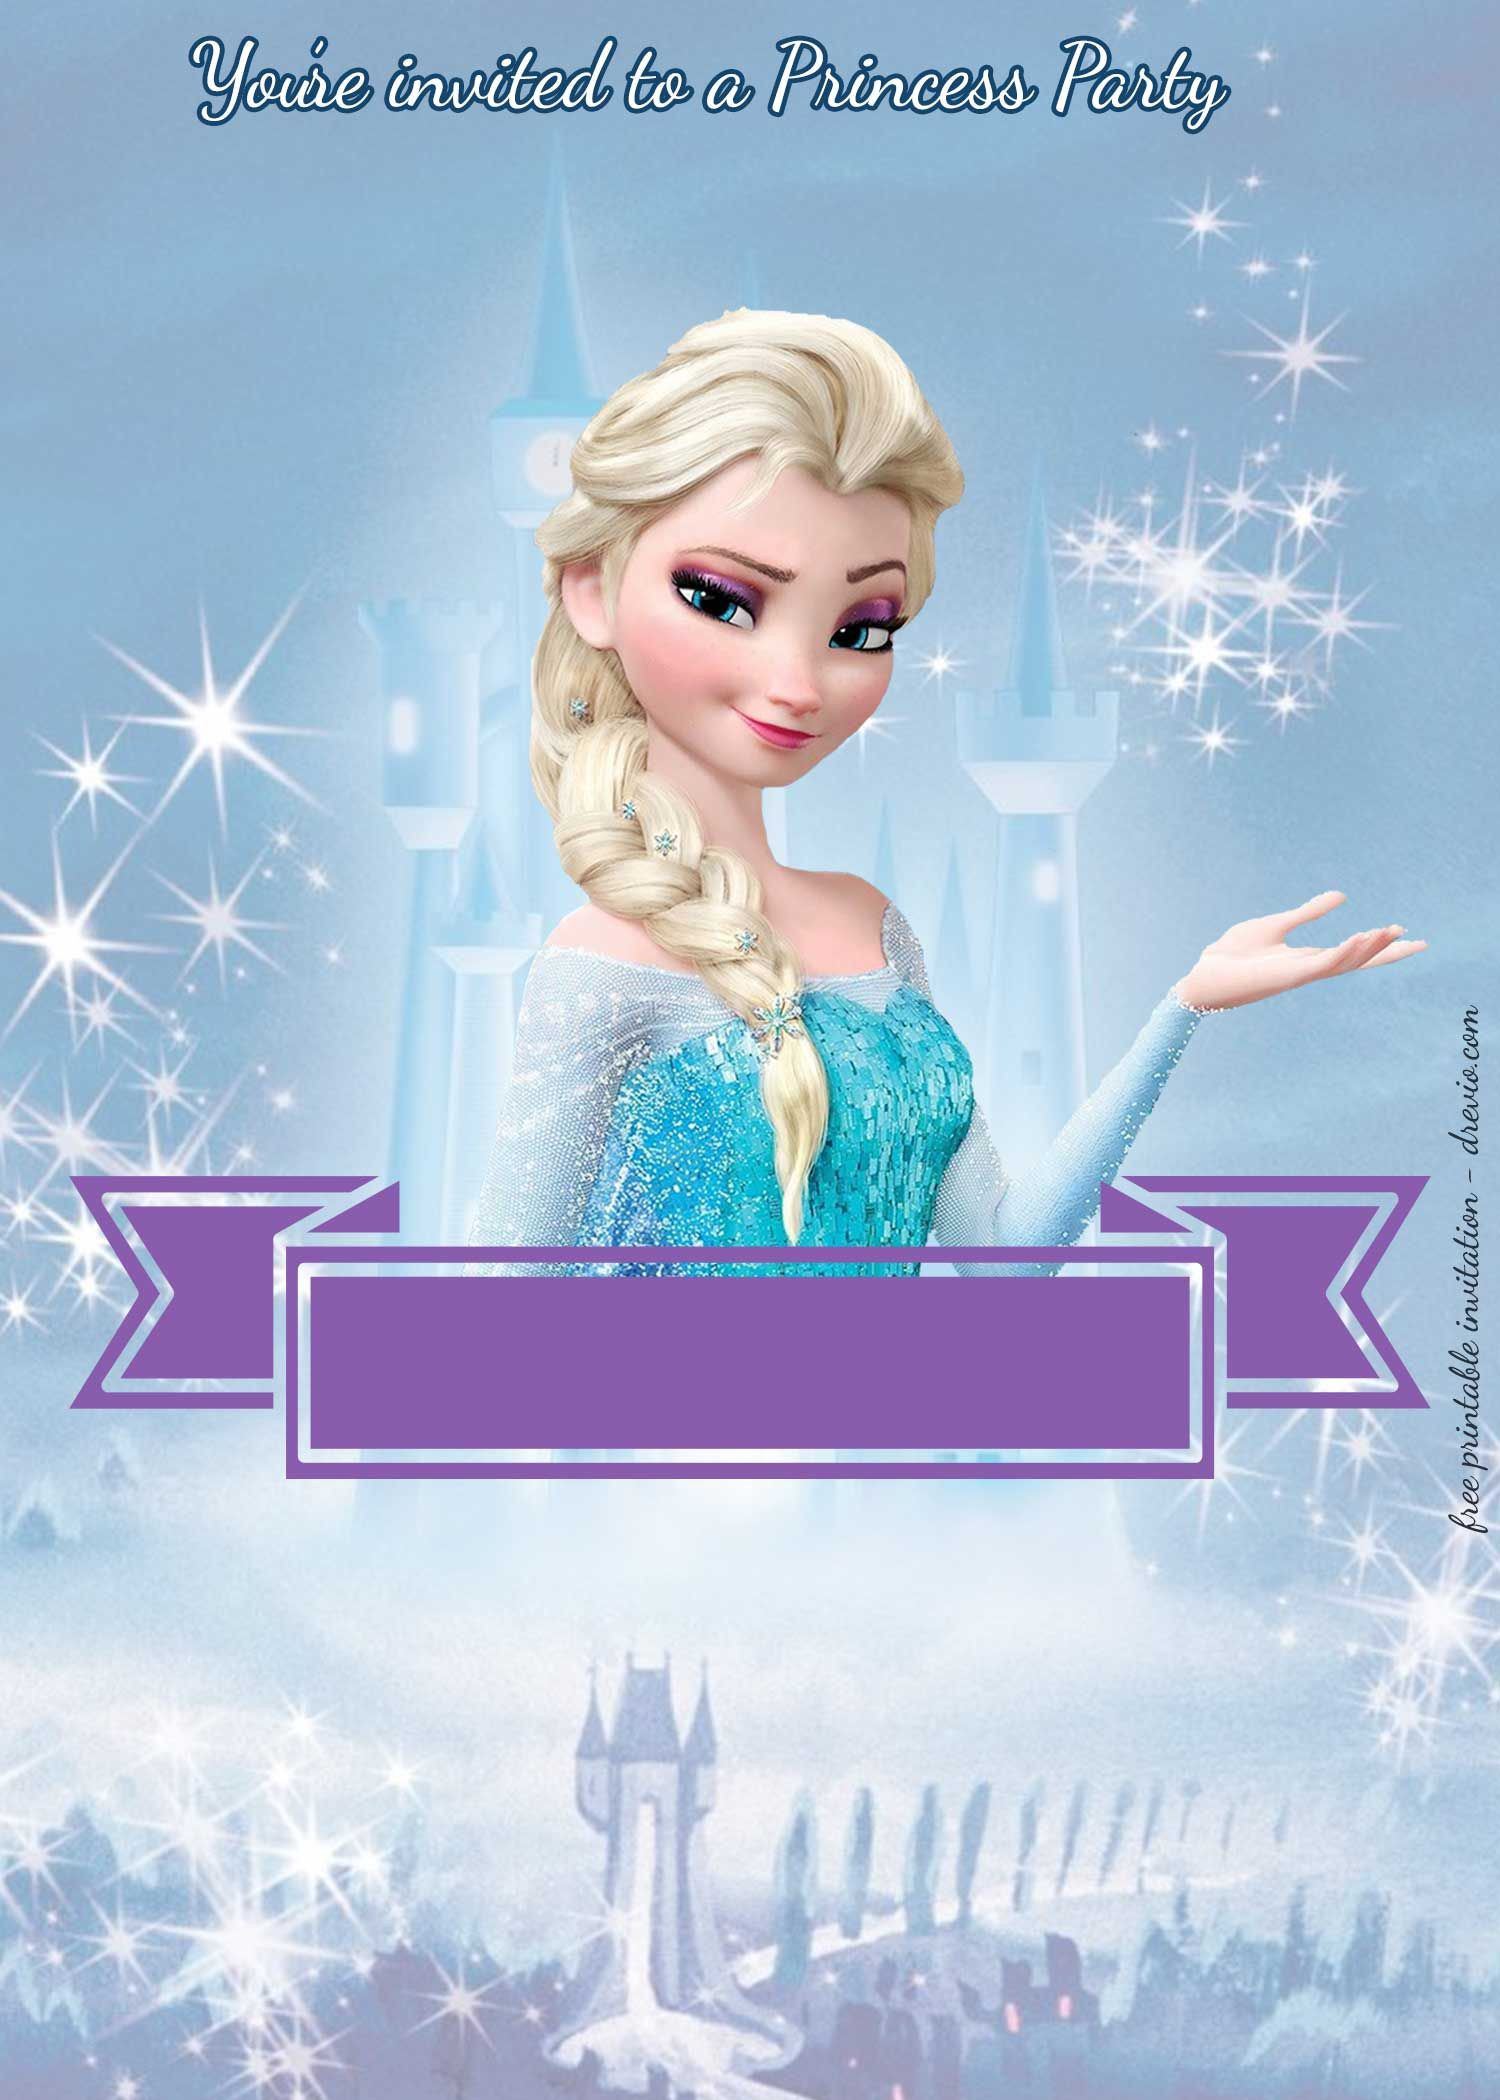 Free Frozen Invitations Printable Free Princess Party Birthday Invitation Templates